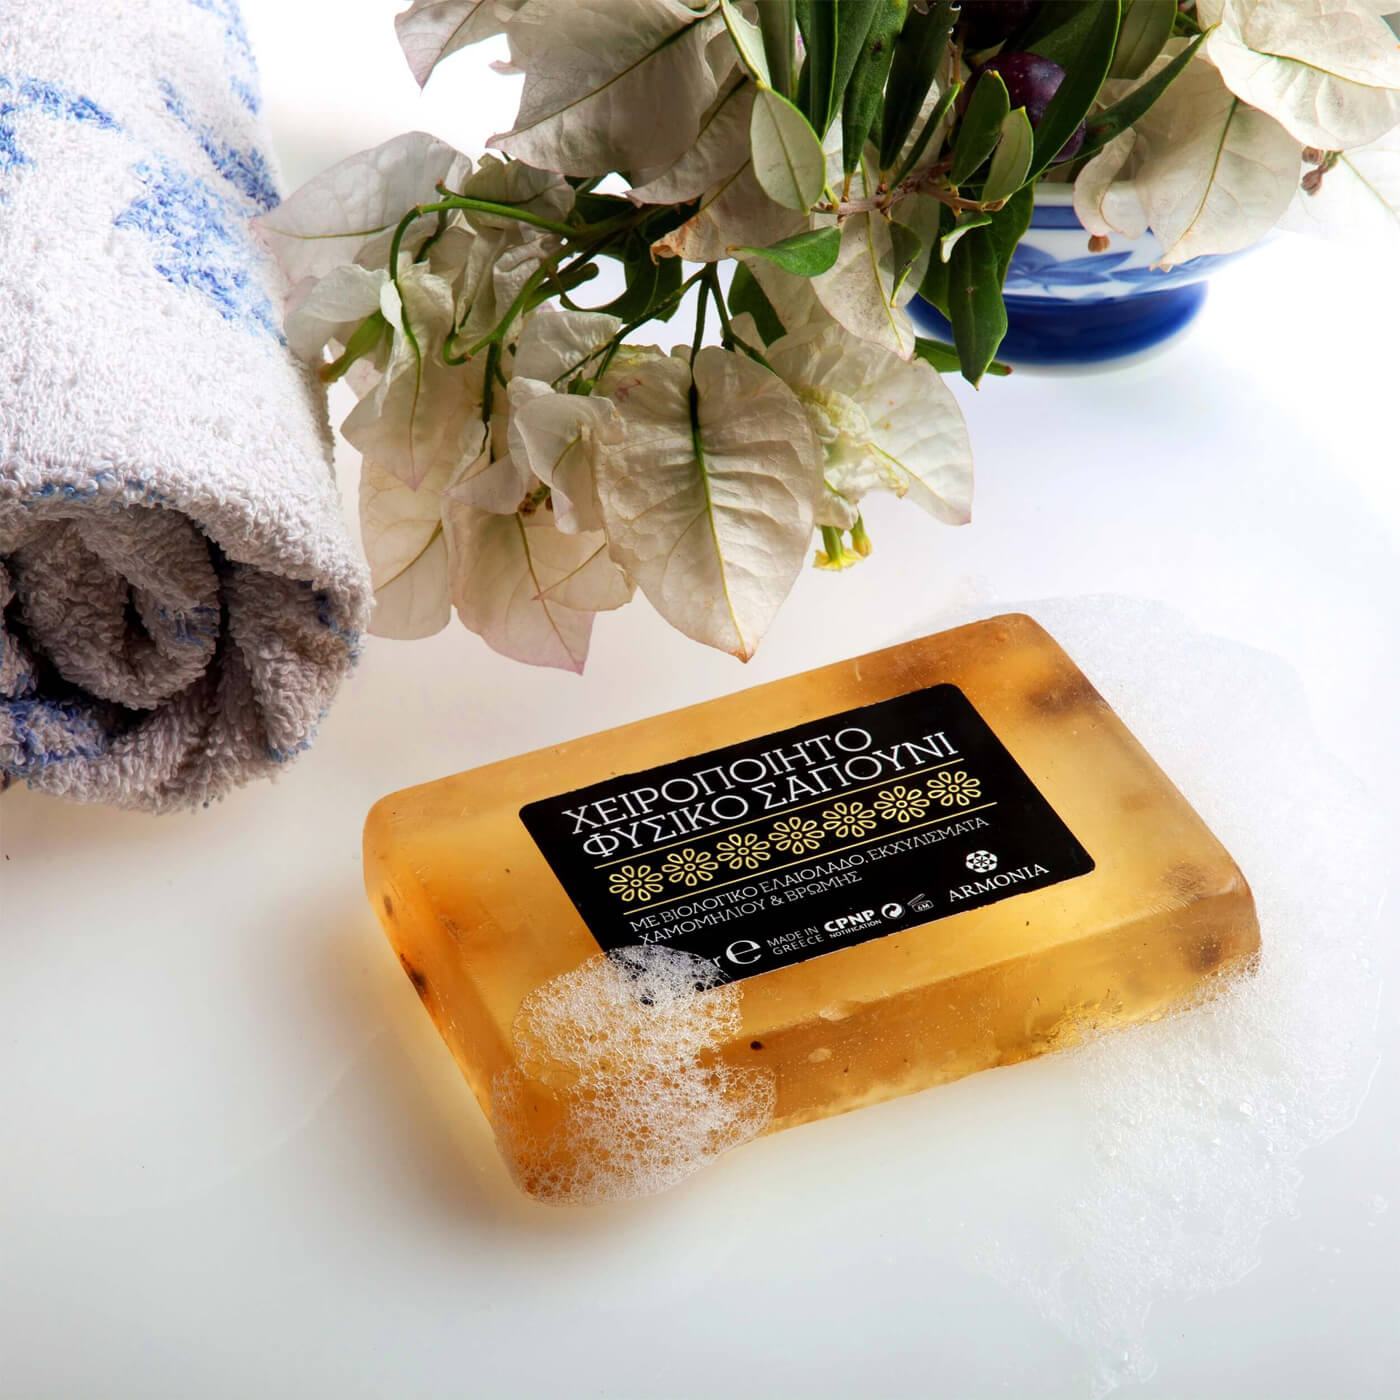 Handmade Soap with Organic Olive Oil chamomile oat Natural 100% Skin Moisturizing Acne extracts Antioxidants Dermatologically Vitamin greek free aging